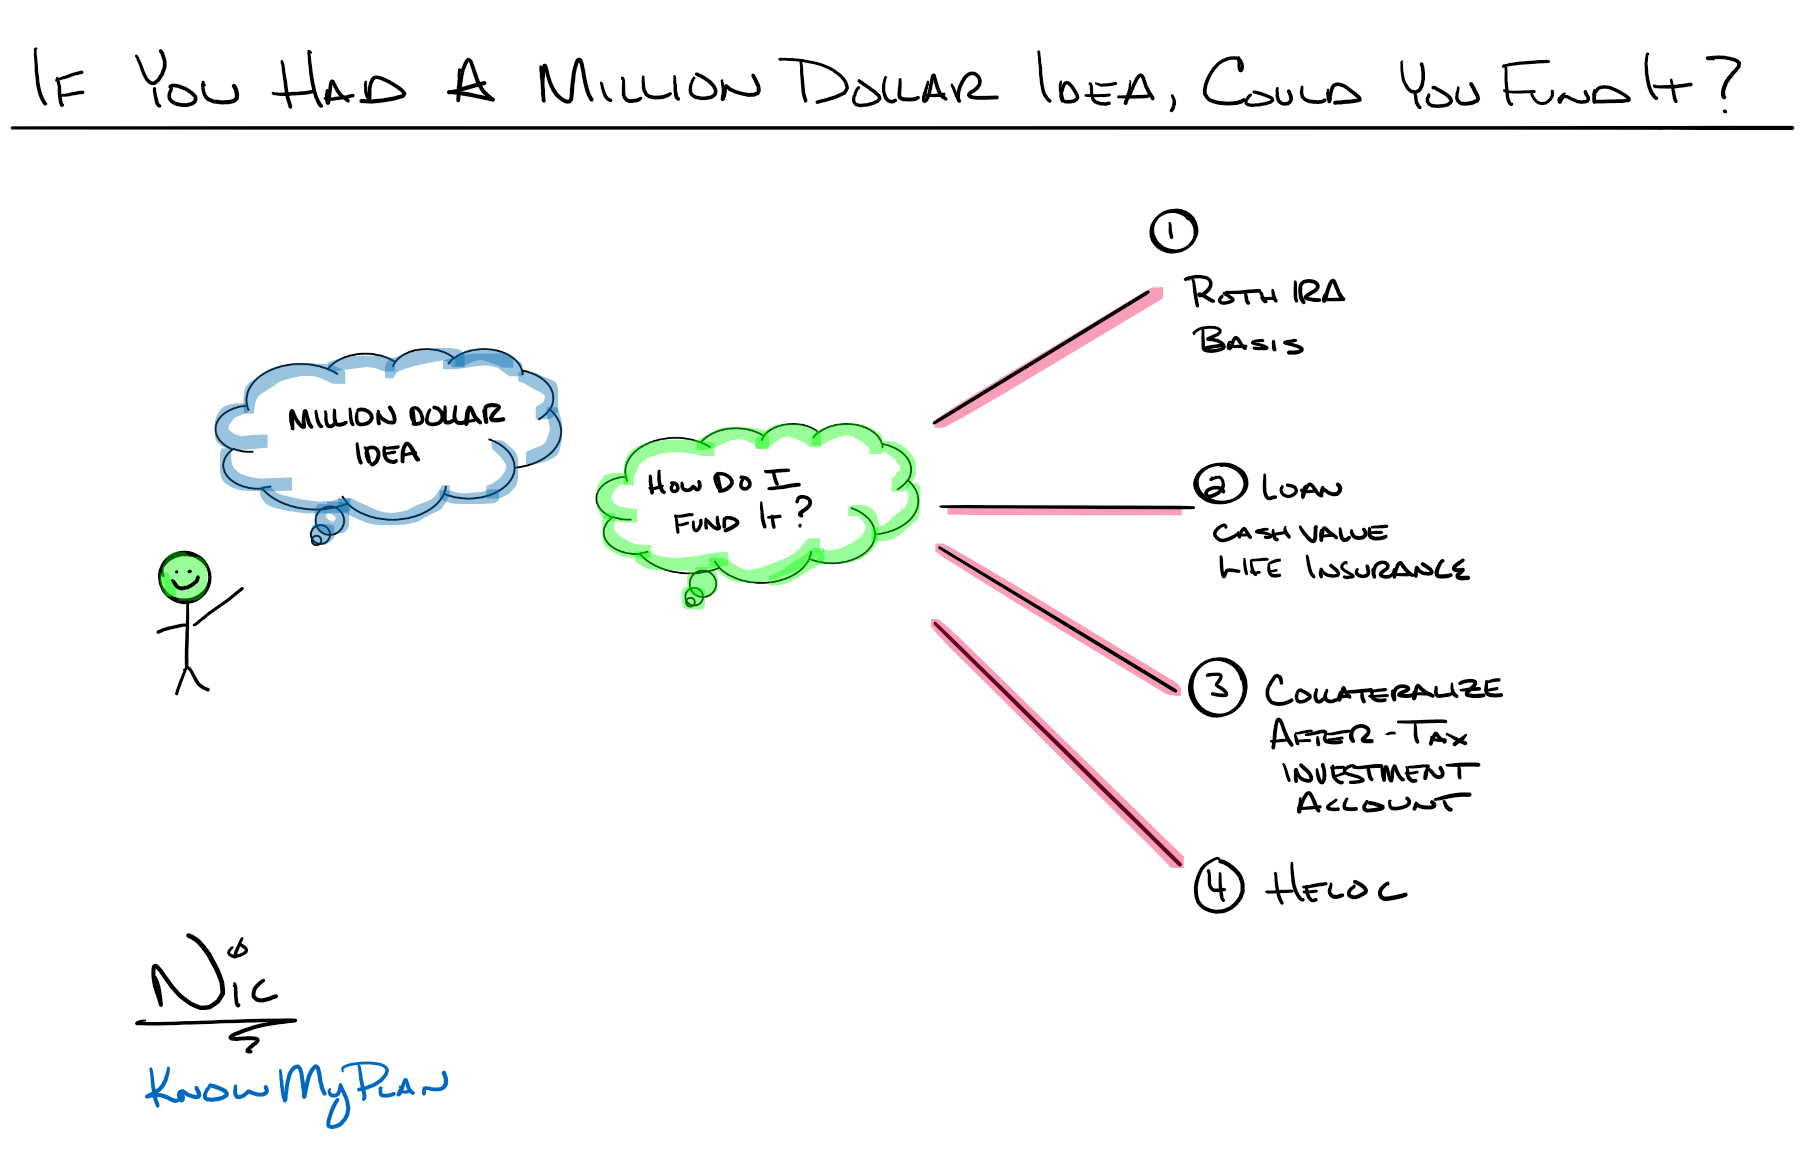 If You Had a Million Dollar Idea, Could You Fund It? Thumbnail